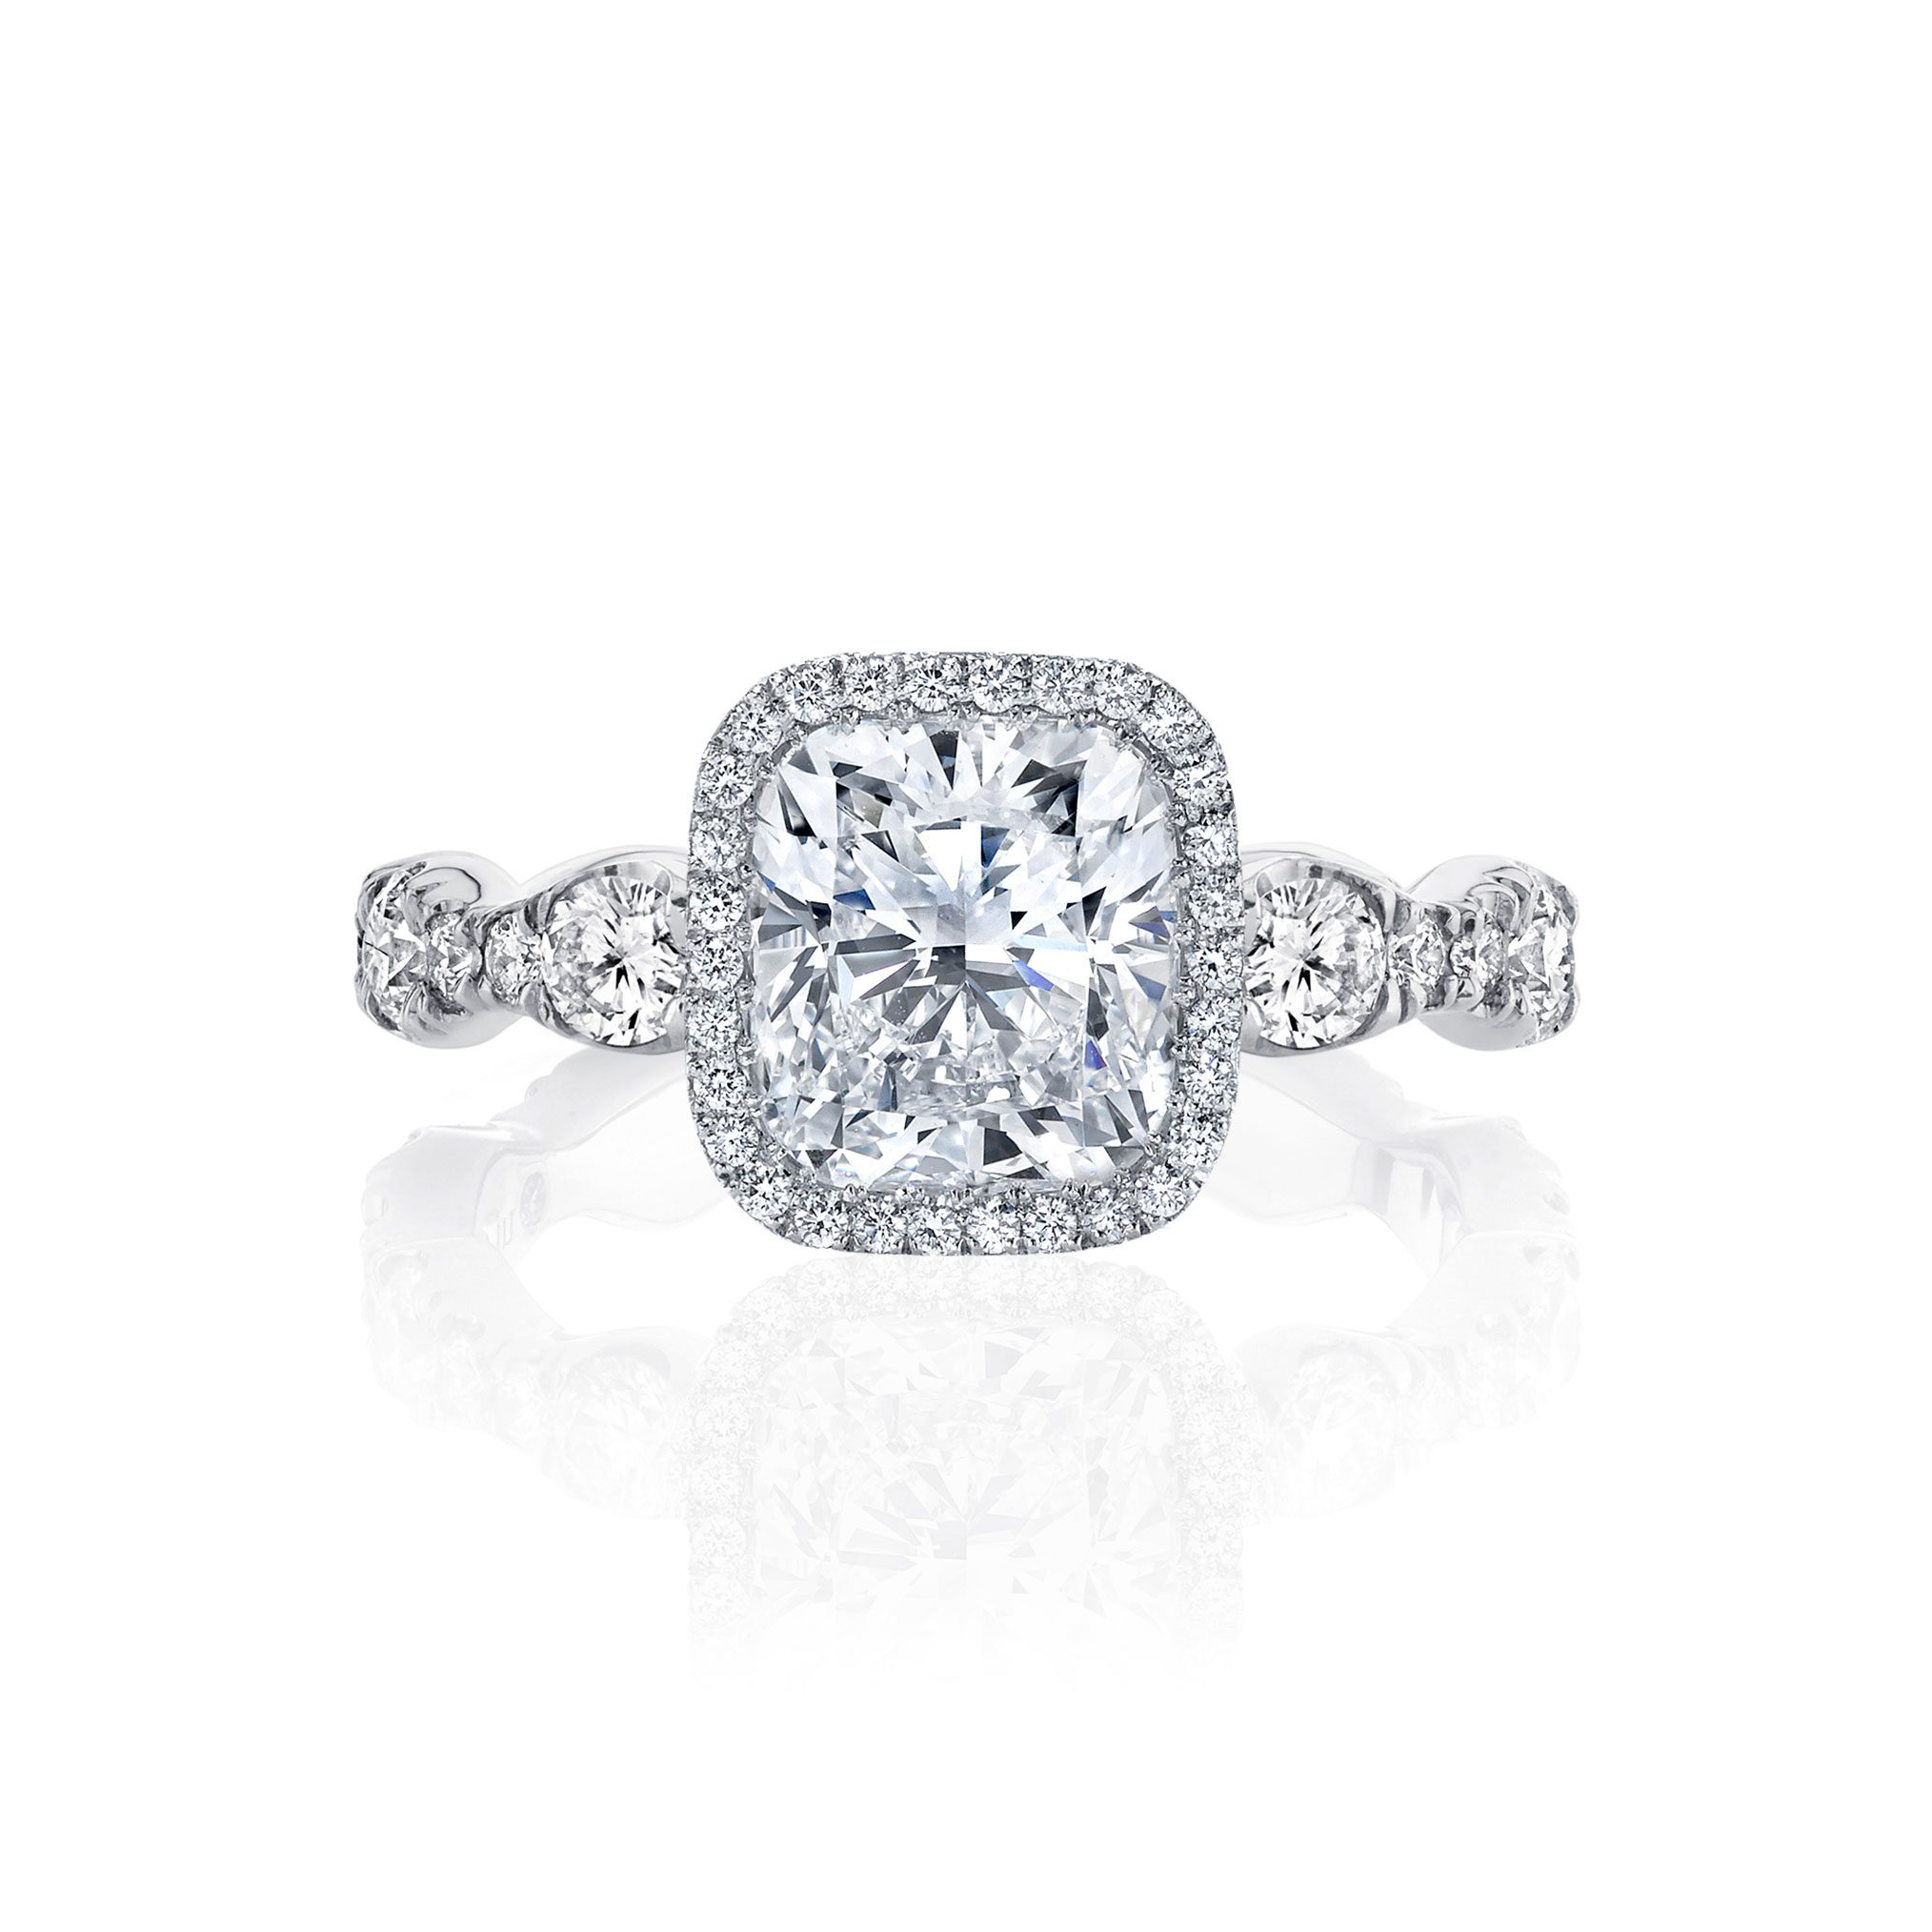 Yvonne Seamless Halo® Engagement Ring with Lab Grown Cushion Cut Diamond in 18k white gold